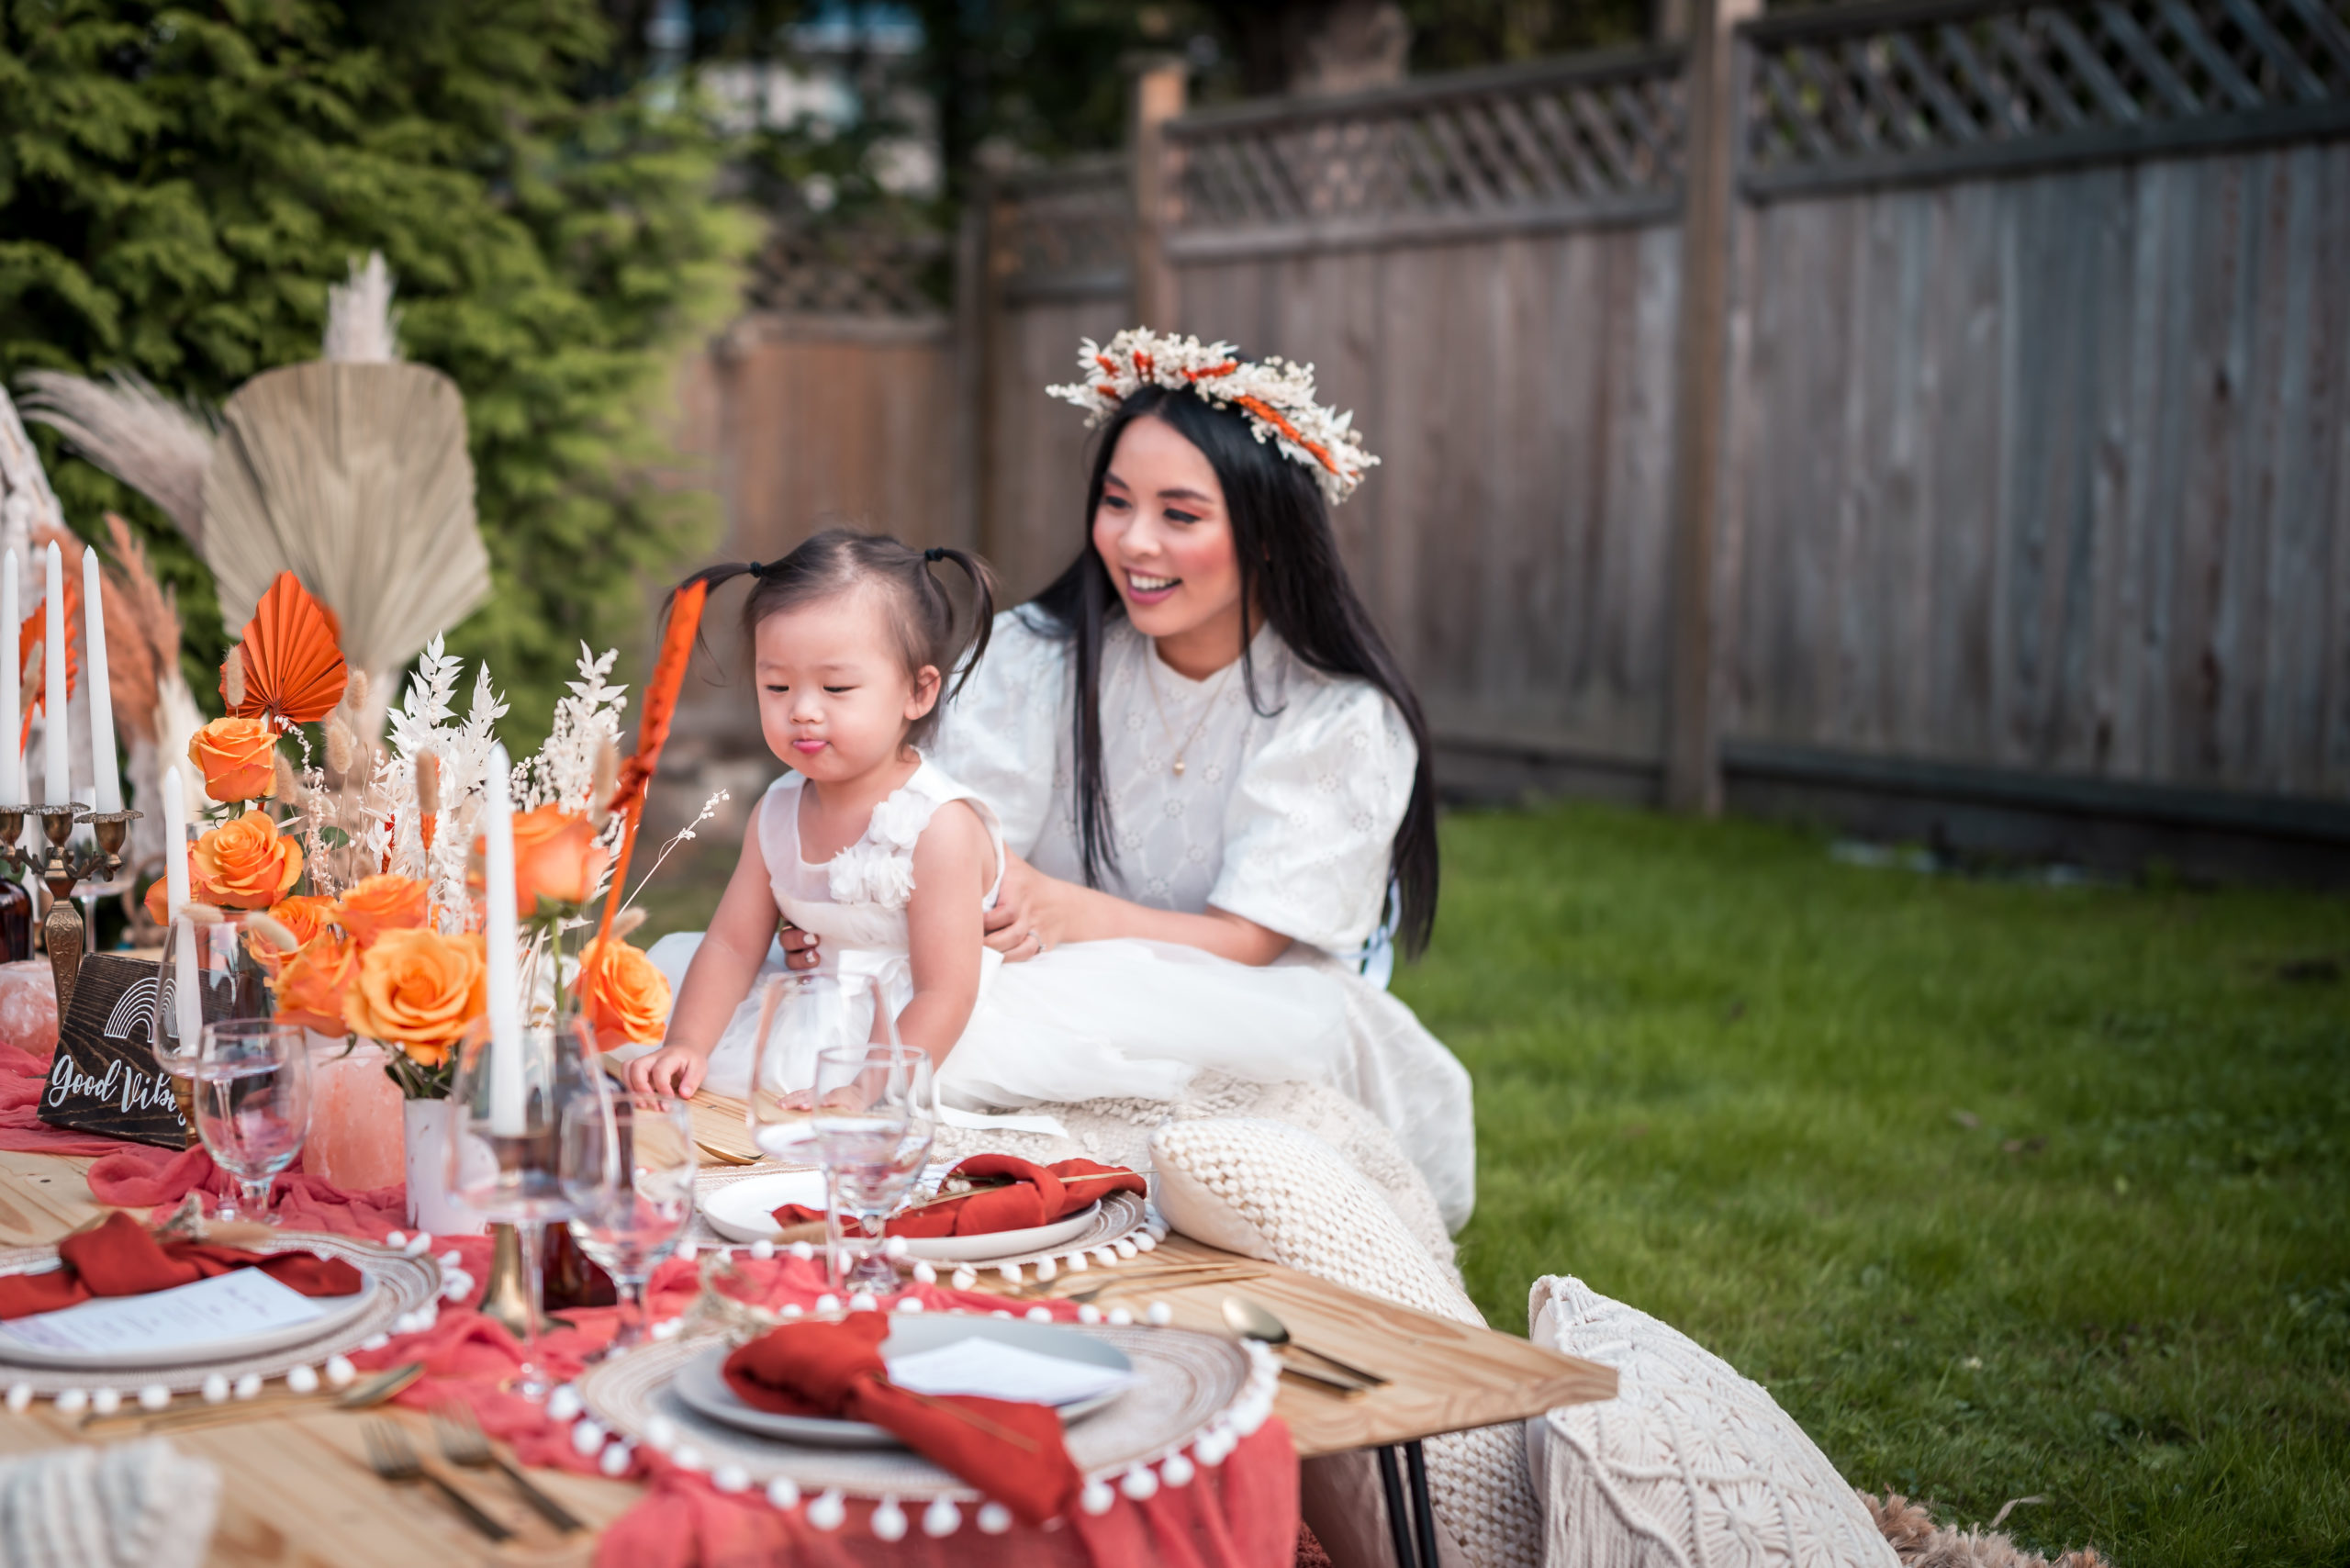 Glamouraspirit home for dinner fundraising picnic in backyard with flower crown and adelina with fall decor for RMH BC with Fresh Prep